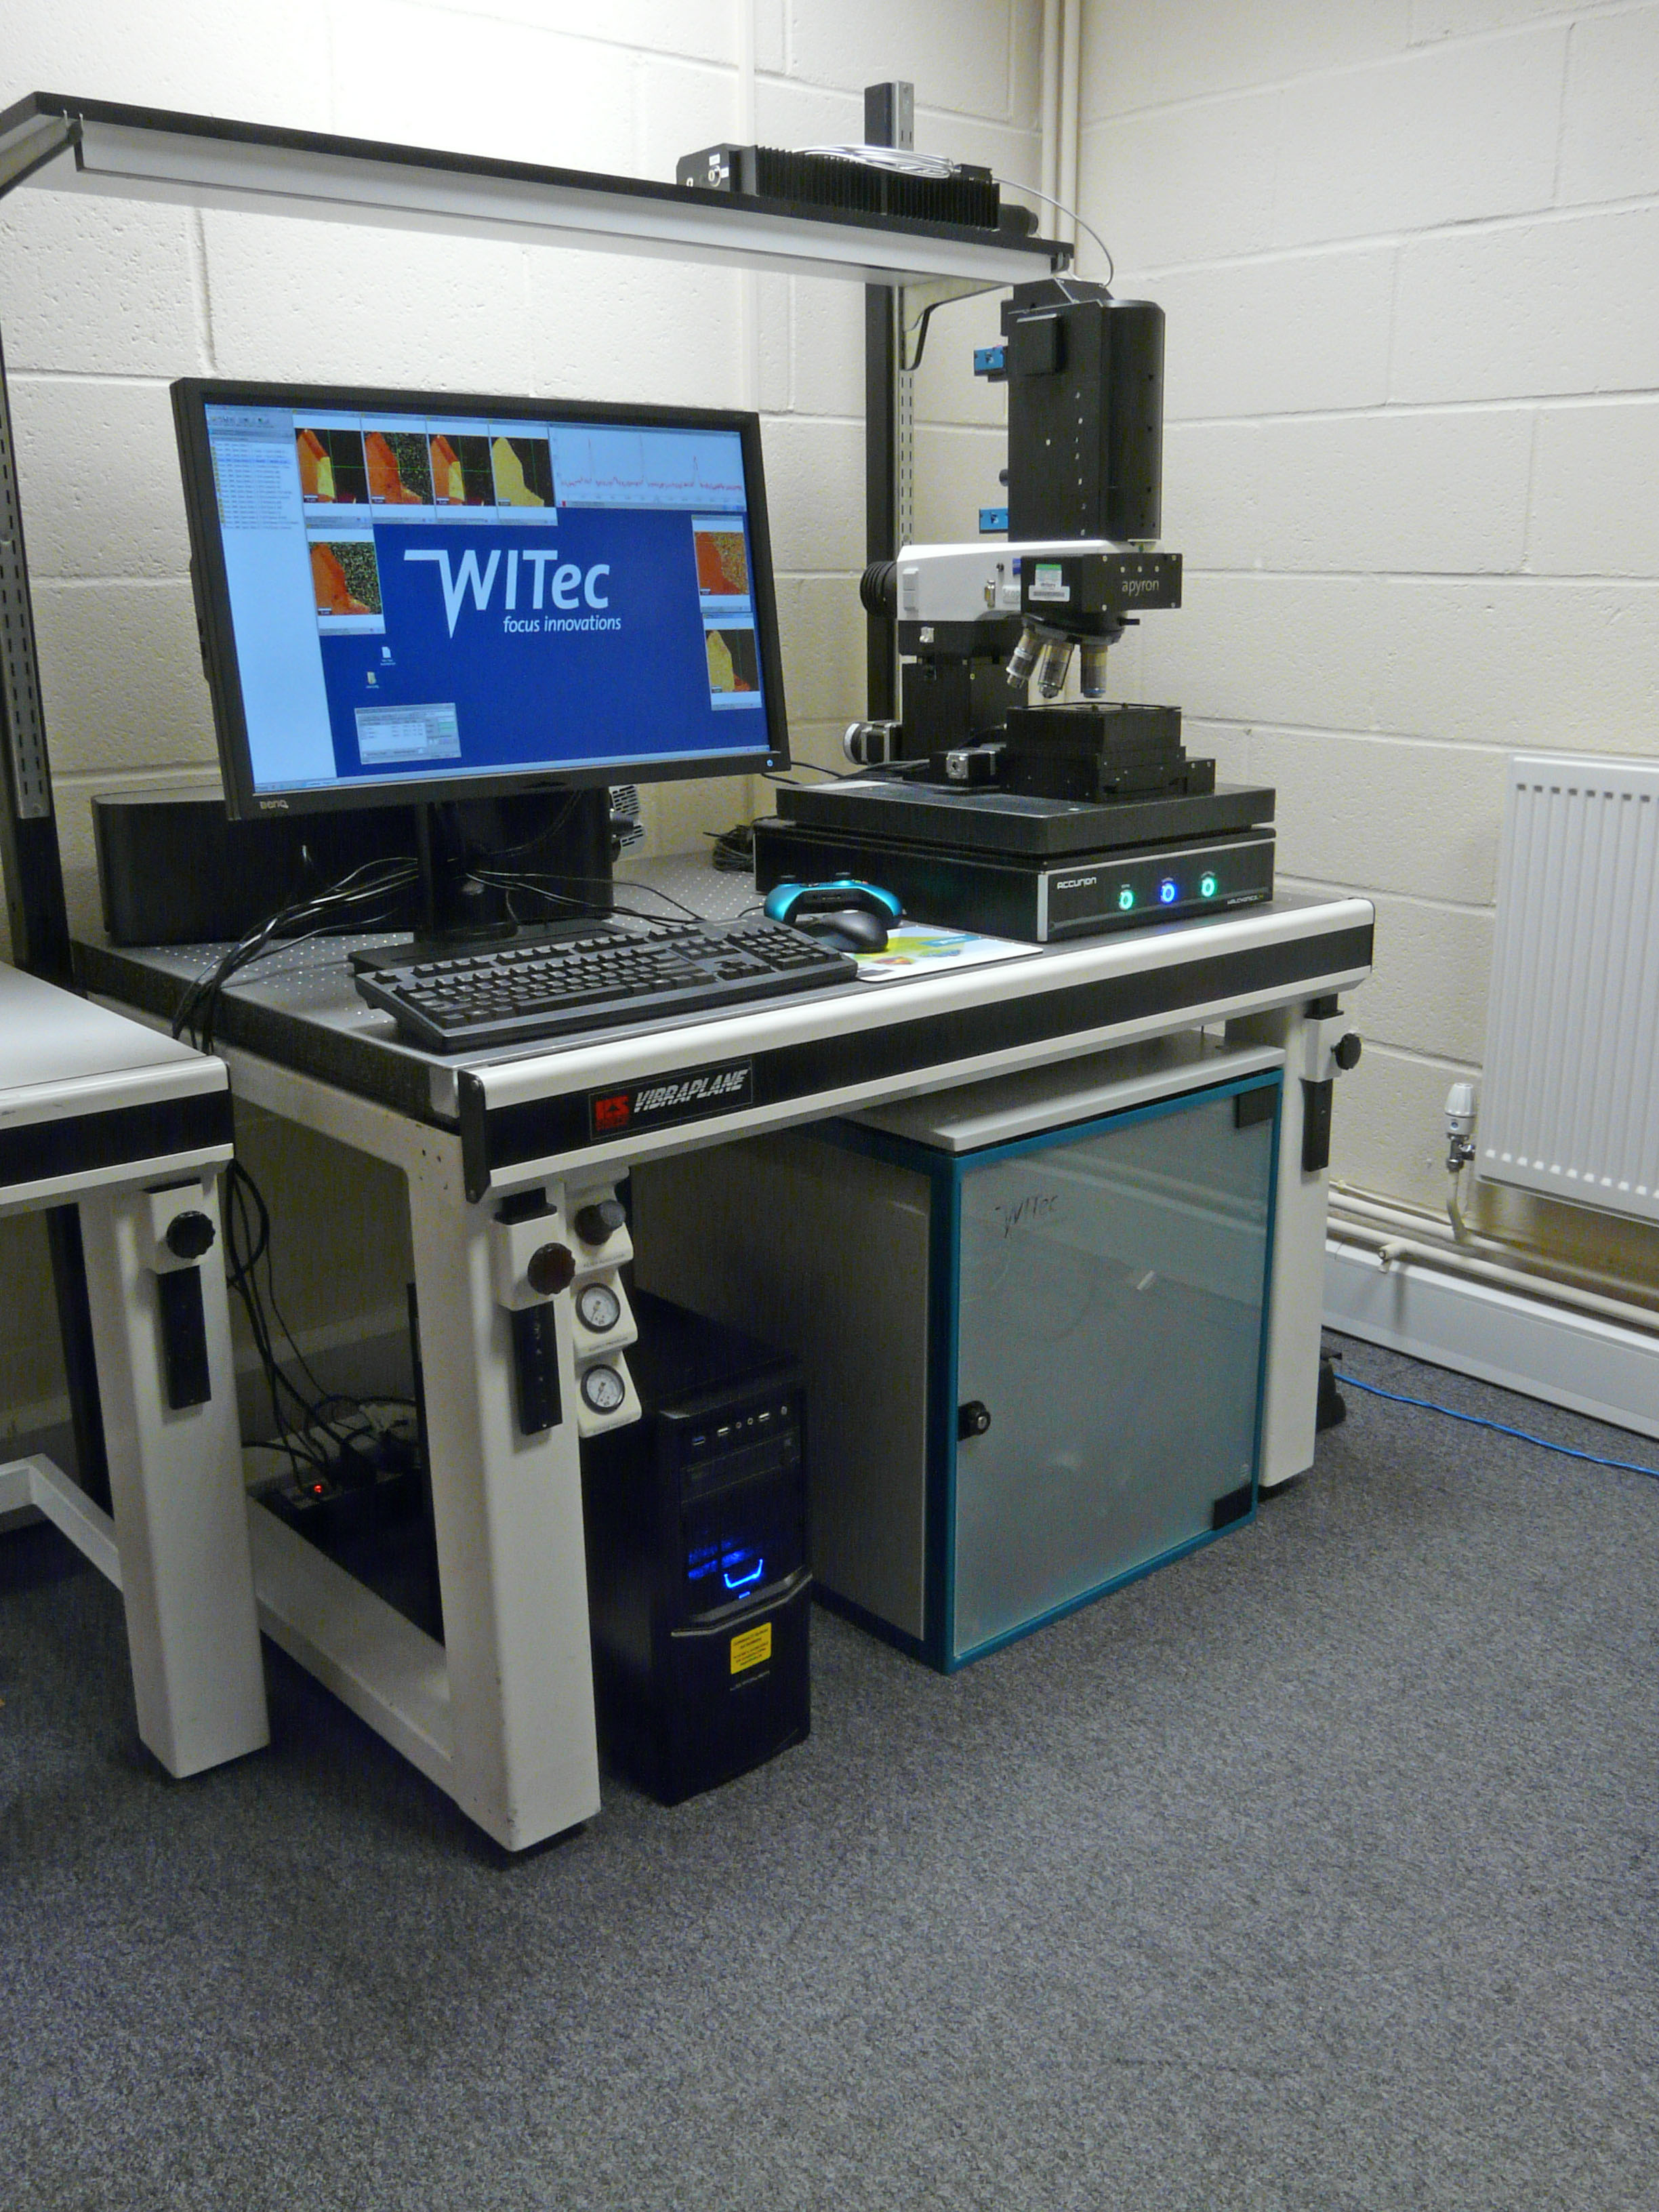 WITec apyron system in our lab